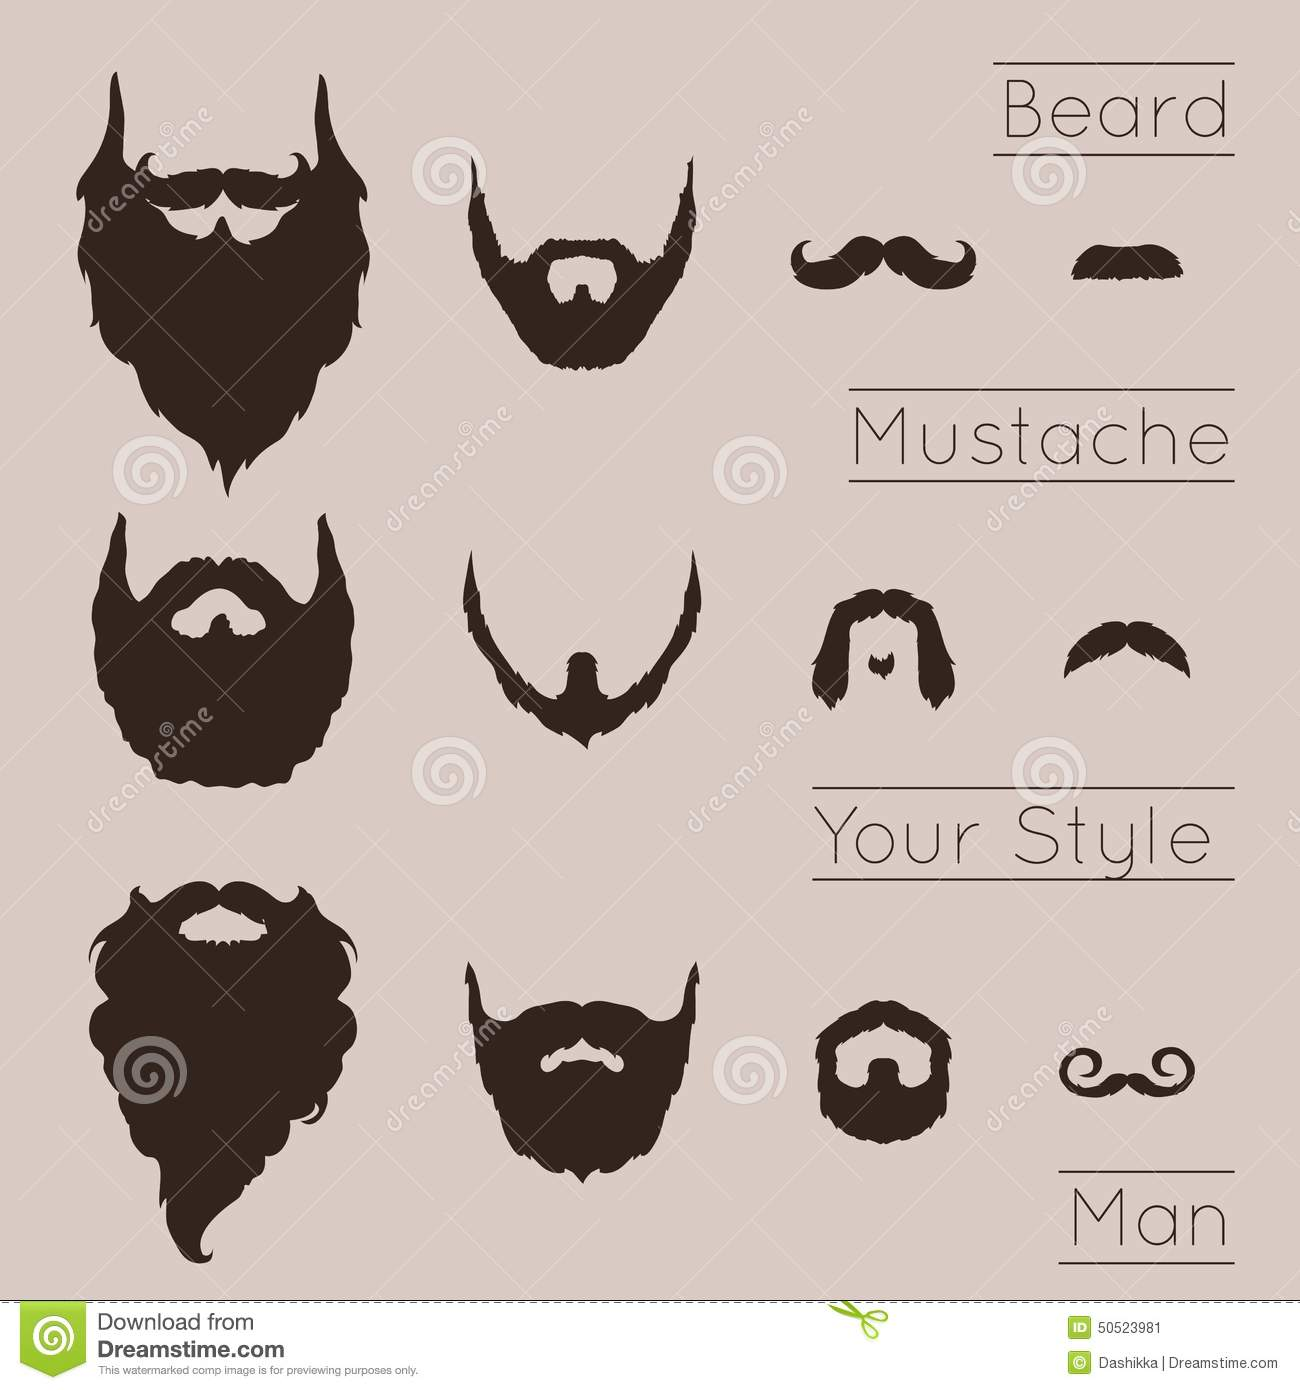 beards and mustaches set stock vector image of human